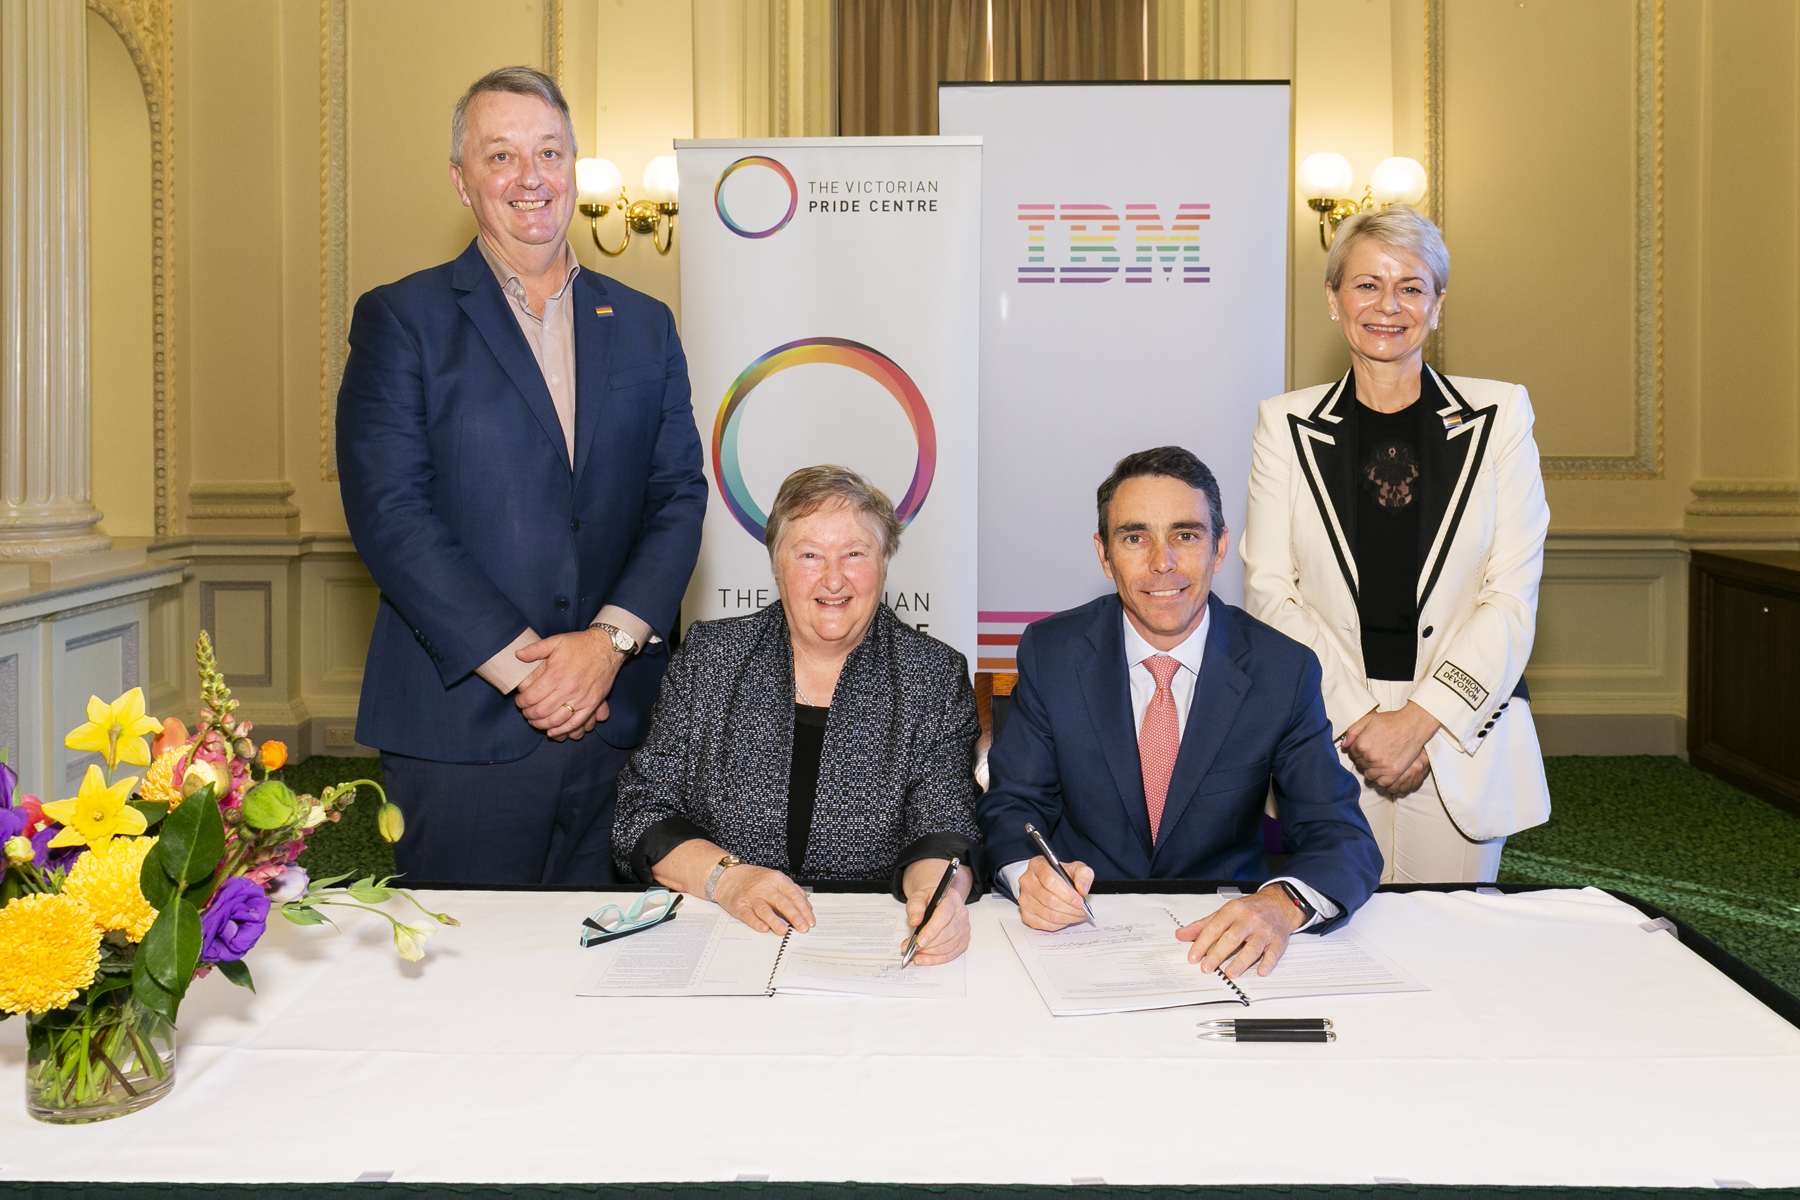 From left to right: Hon. Martin Foley, Minister for Equality, Mental Health and Creative Industries, Jude Munro AO, Chair of the Victorian Pride Centre, David La Rose, Managing Director, IBM A/NZ, Harriet Green, Chairman and CEO, IBM Asia Pacific